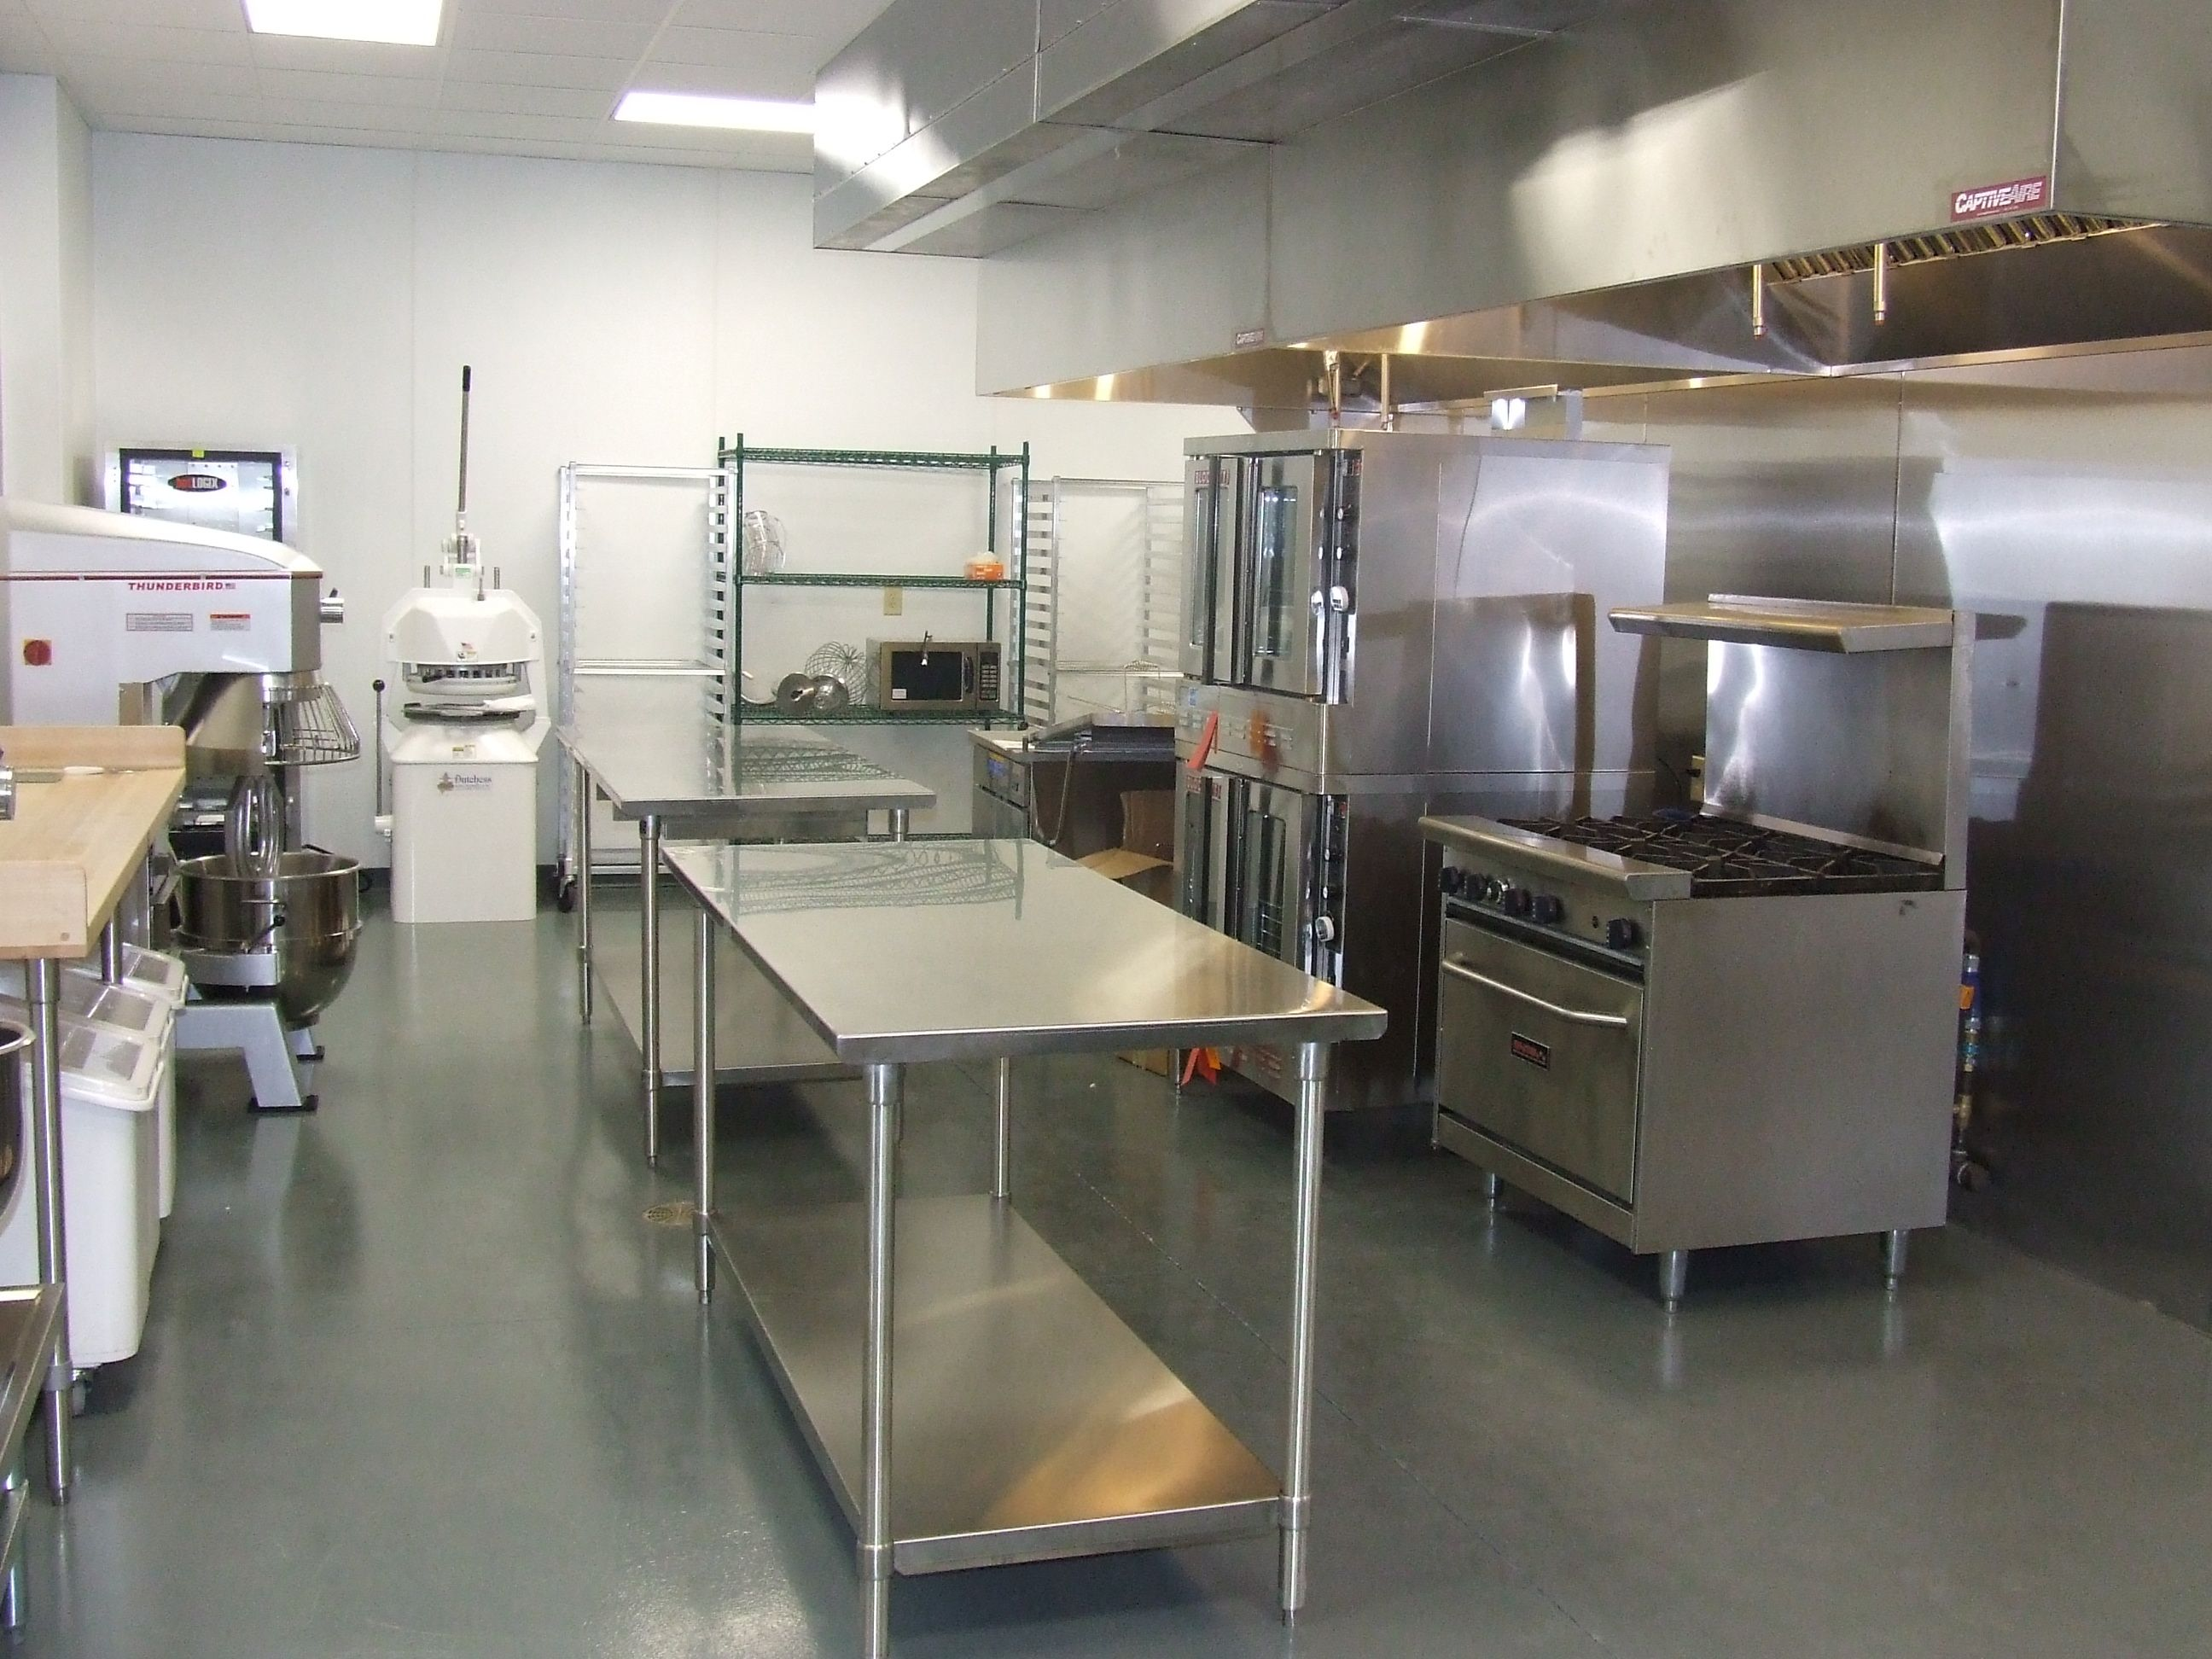 Commercial Kitchen Goodman S Restaurant Pinterest Commercial